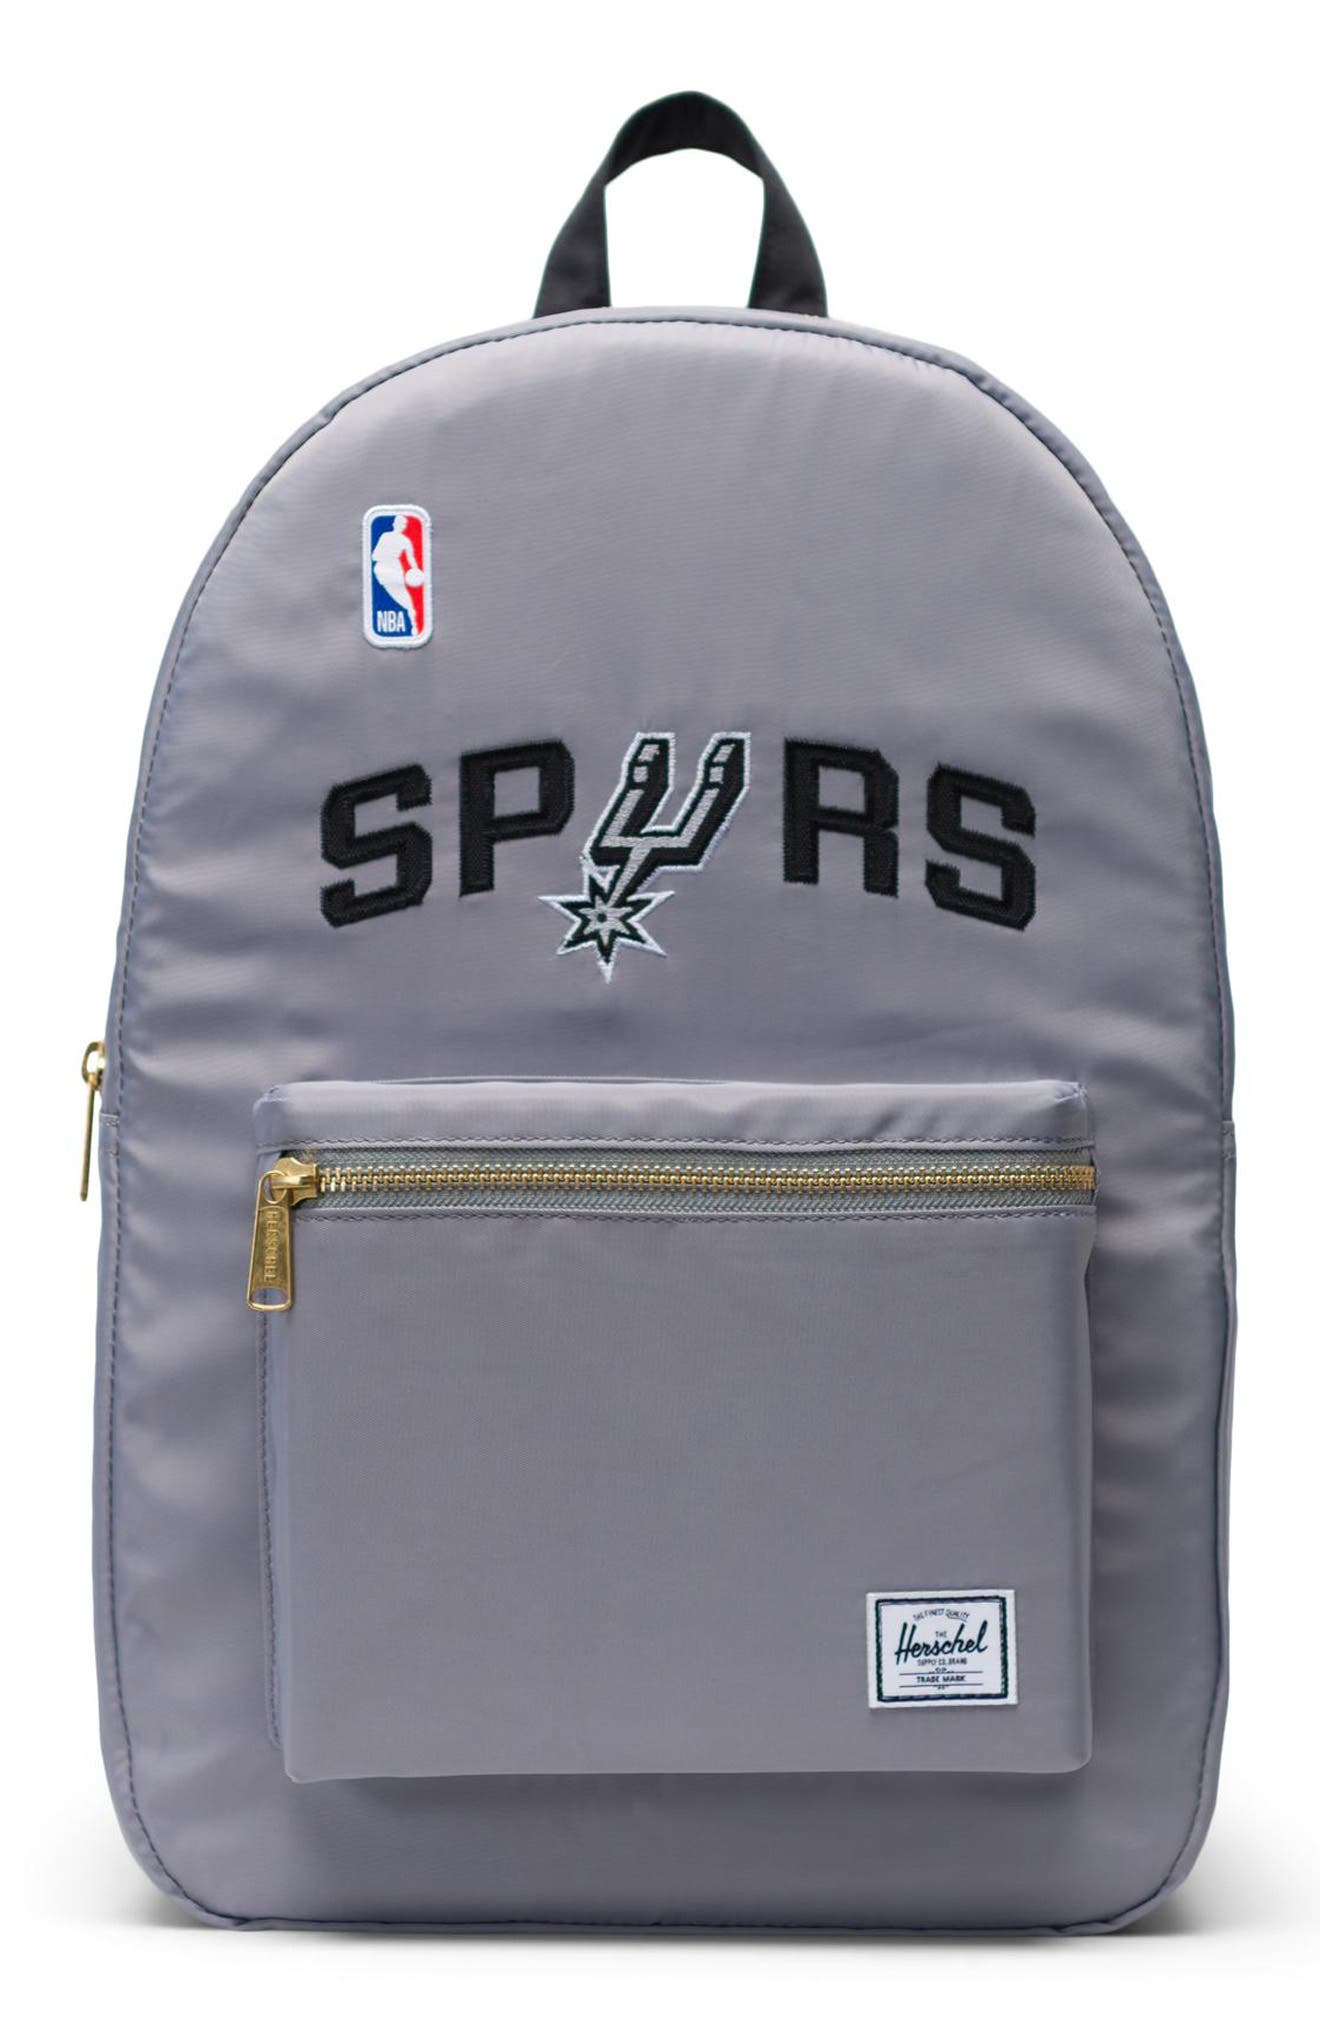 Herschel Supply Co. Settlement - Nba Champion Backpack - Grey